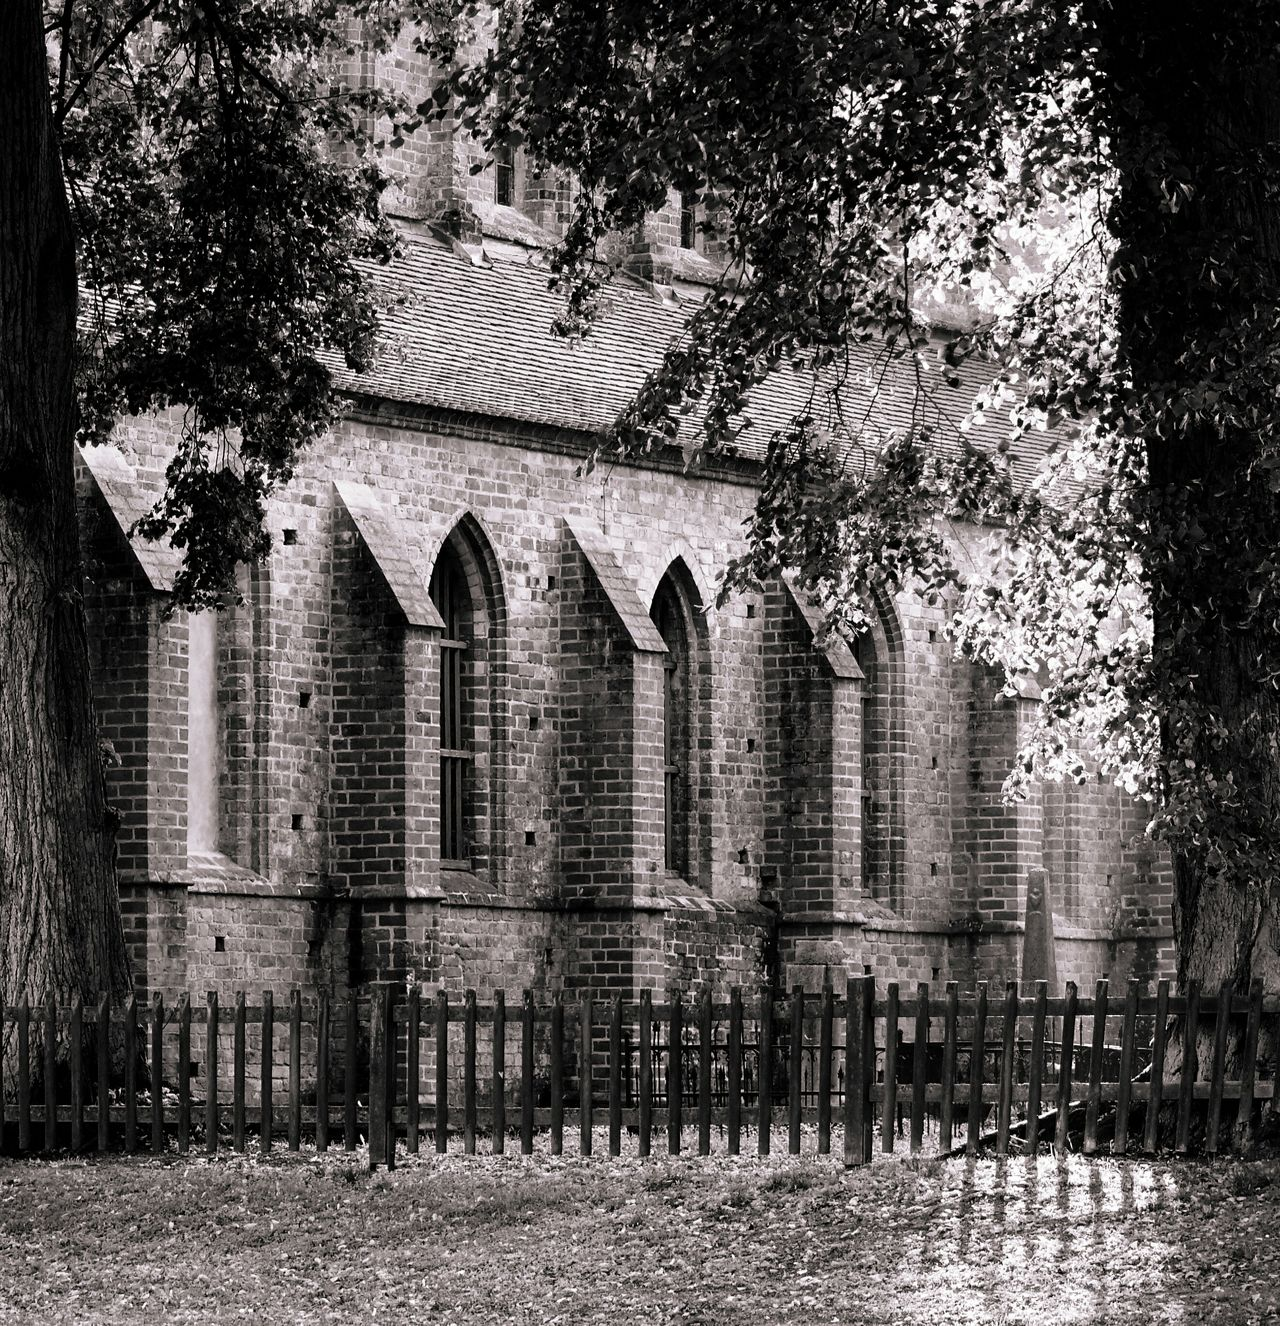 Architecture Building Chorin Church Fall Beauty Fence Germany Mirrorless No People Old